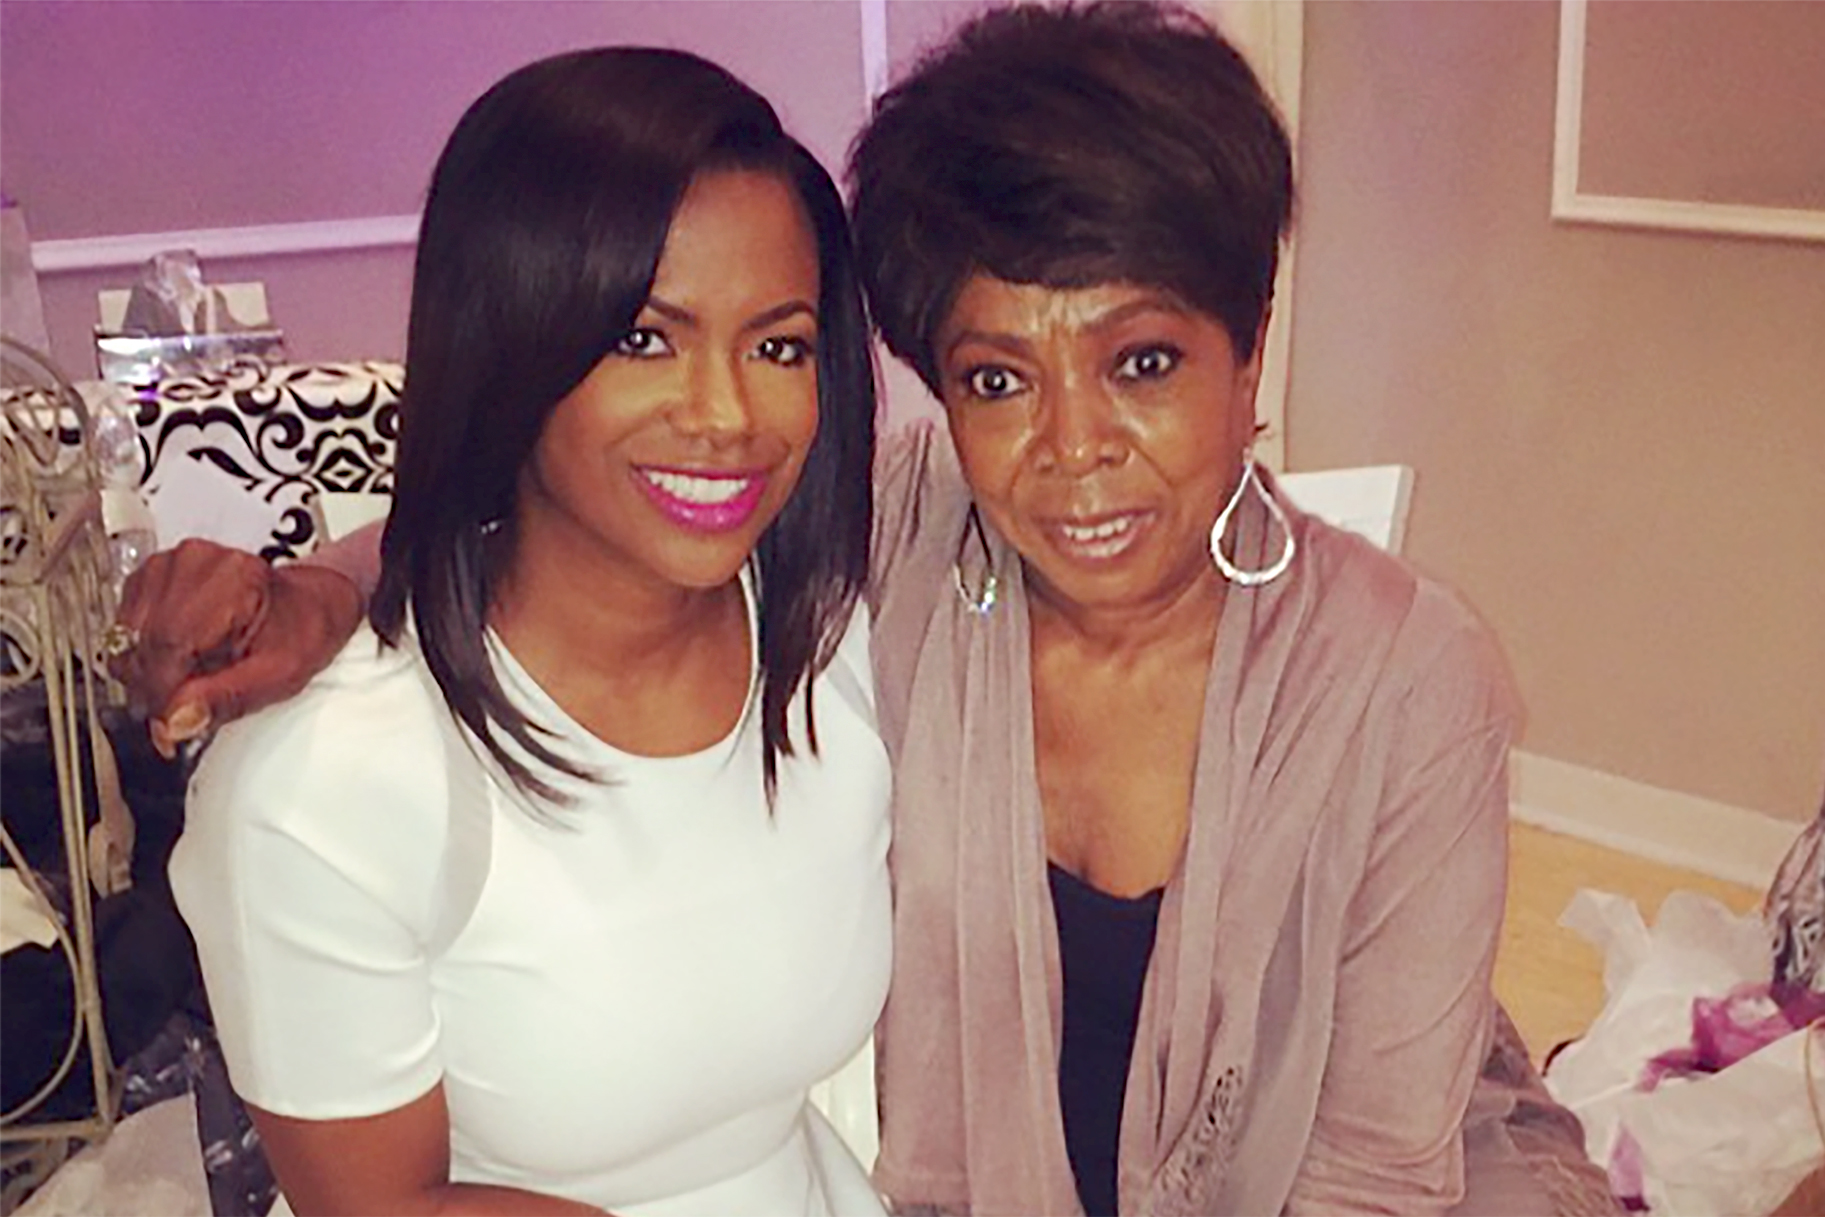 Kandi Burruss Commemorates Mama Sharon And Gets Fans Emotional